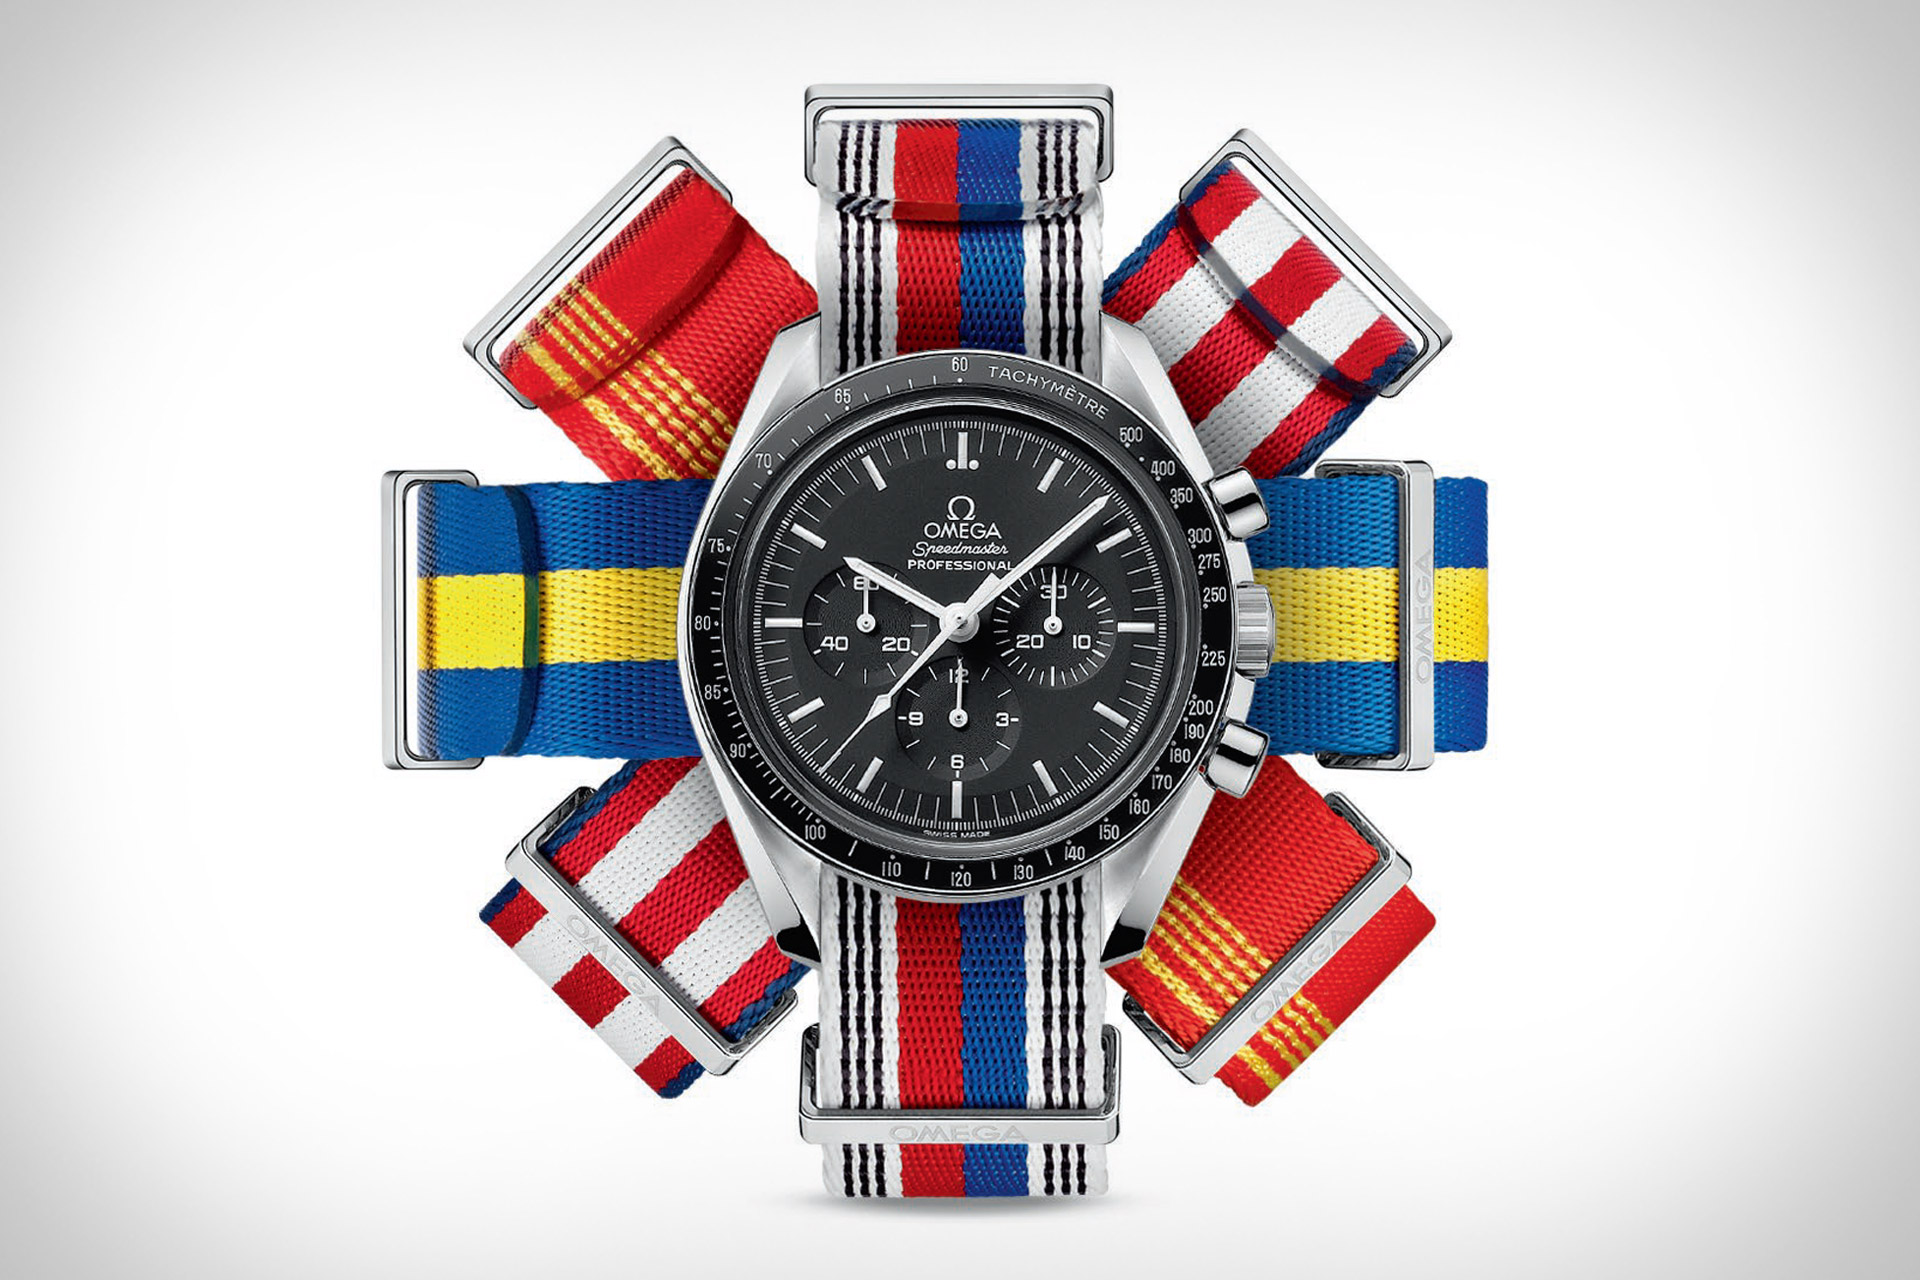 Omega Flag Inspired Nato Watch Straps Uncrate